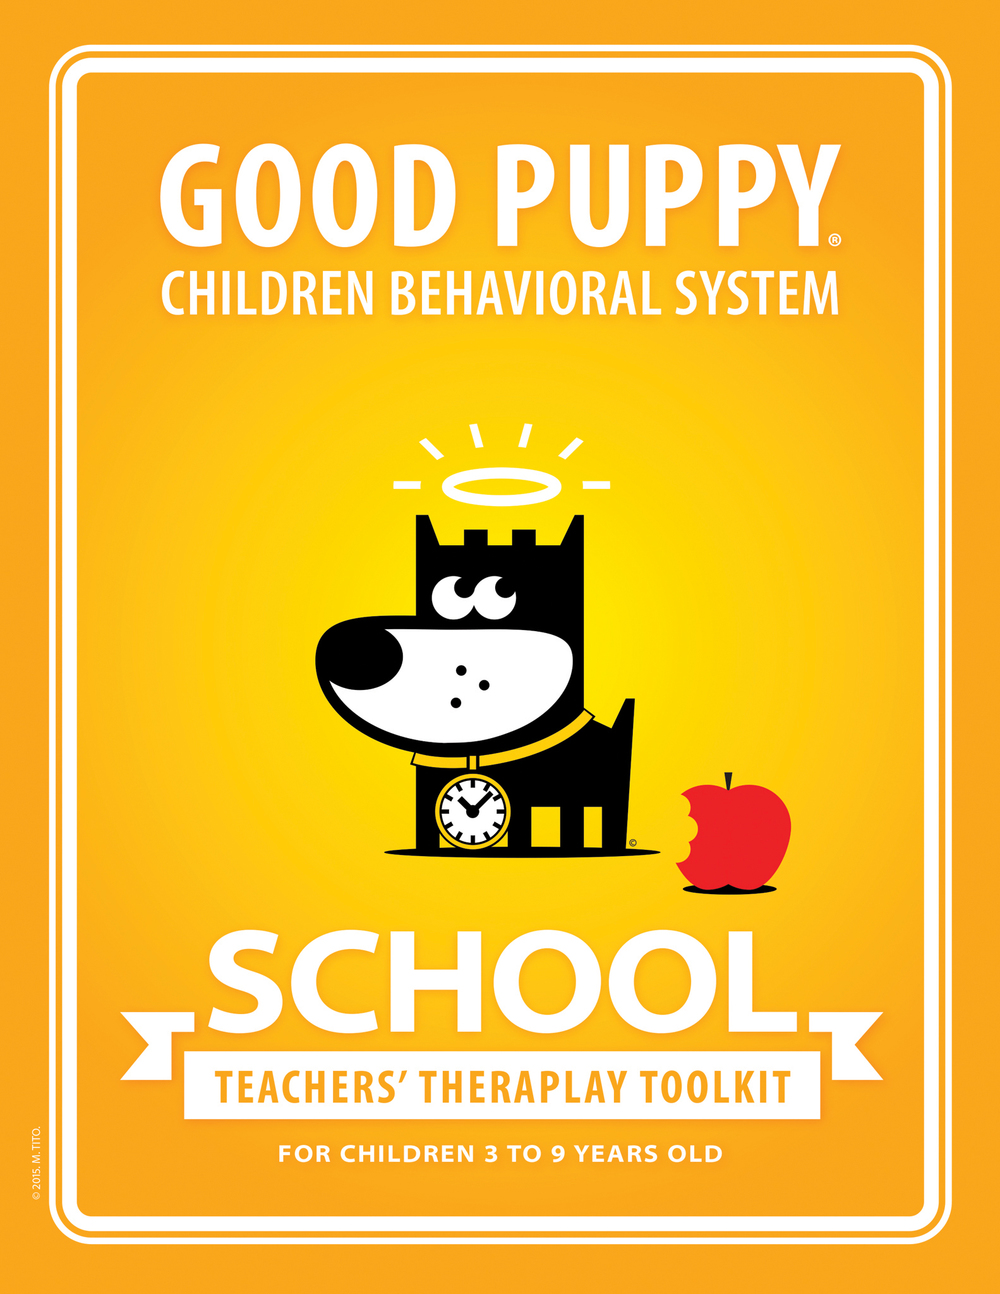 GOOD PUPPY® Children Behavioral System SCHOOL  Press Kit